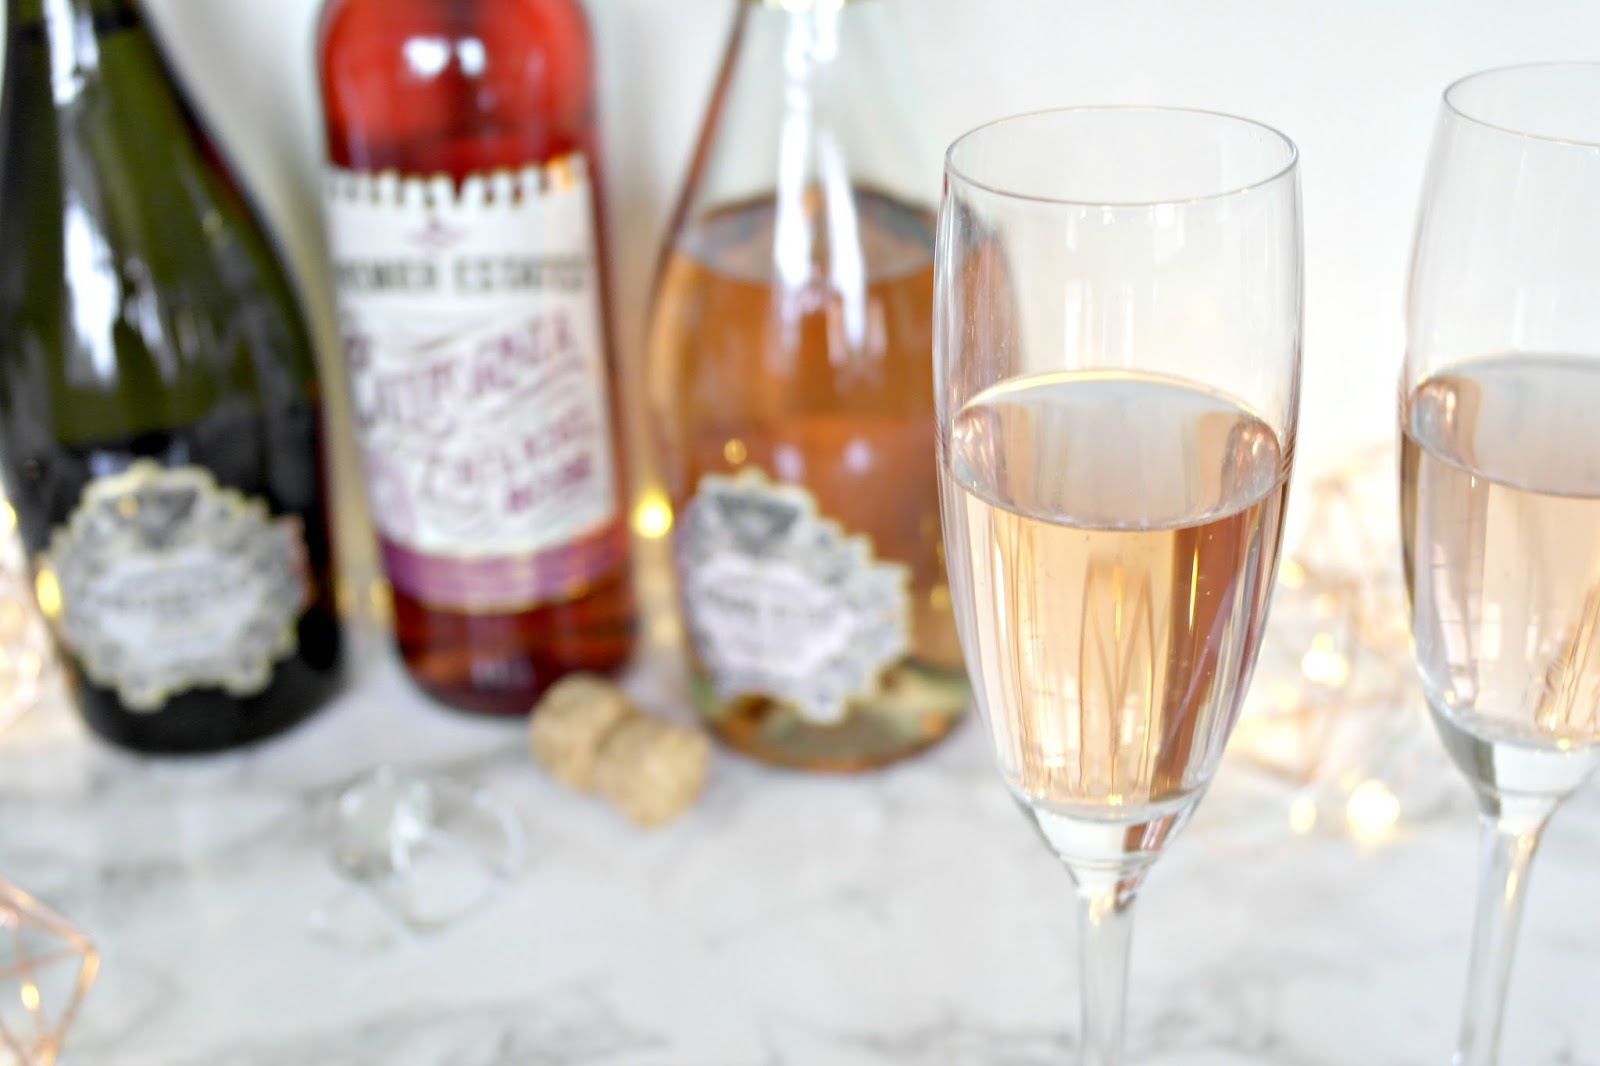 Premier Estates Grand Rose Sparkling Wine review